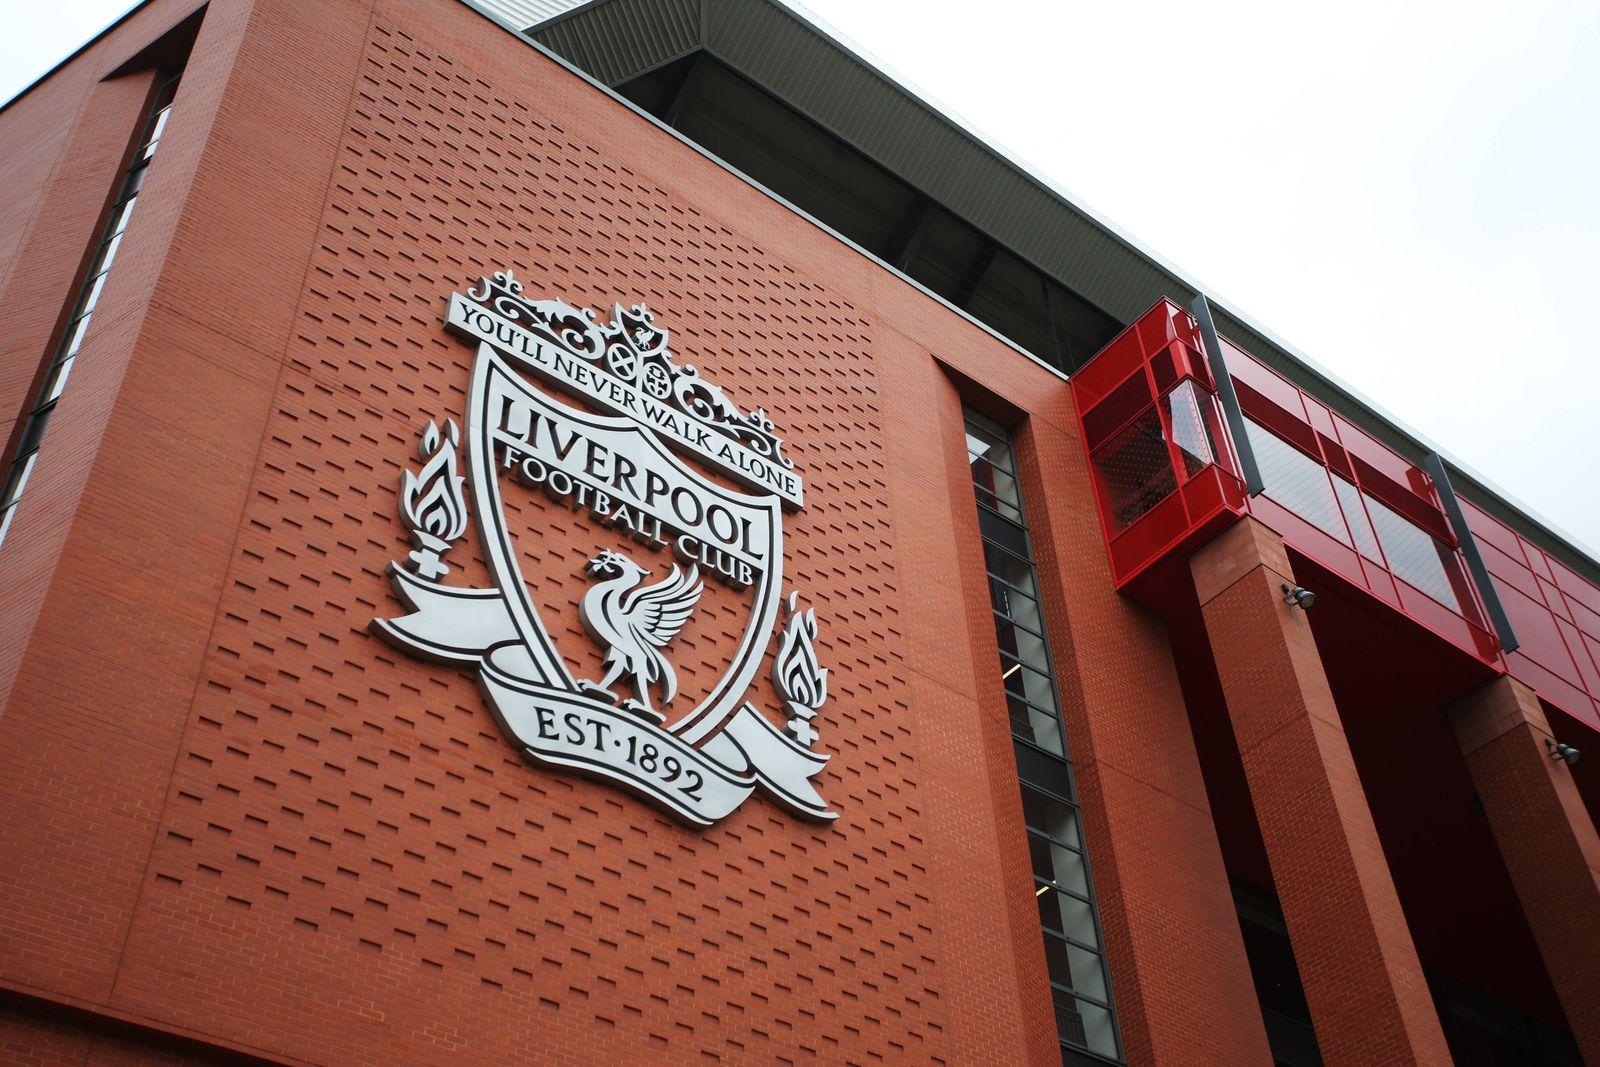 SOCCER - UEFA CL, Liverpool vs RBS, preview LIVERPOOL,ENGLAND,01.OCT.19 - SOCCER - UEFA Champions League, group stage,